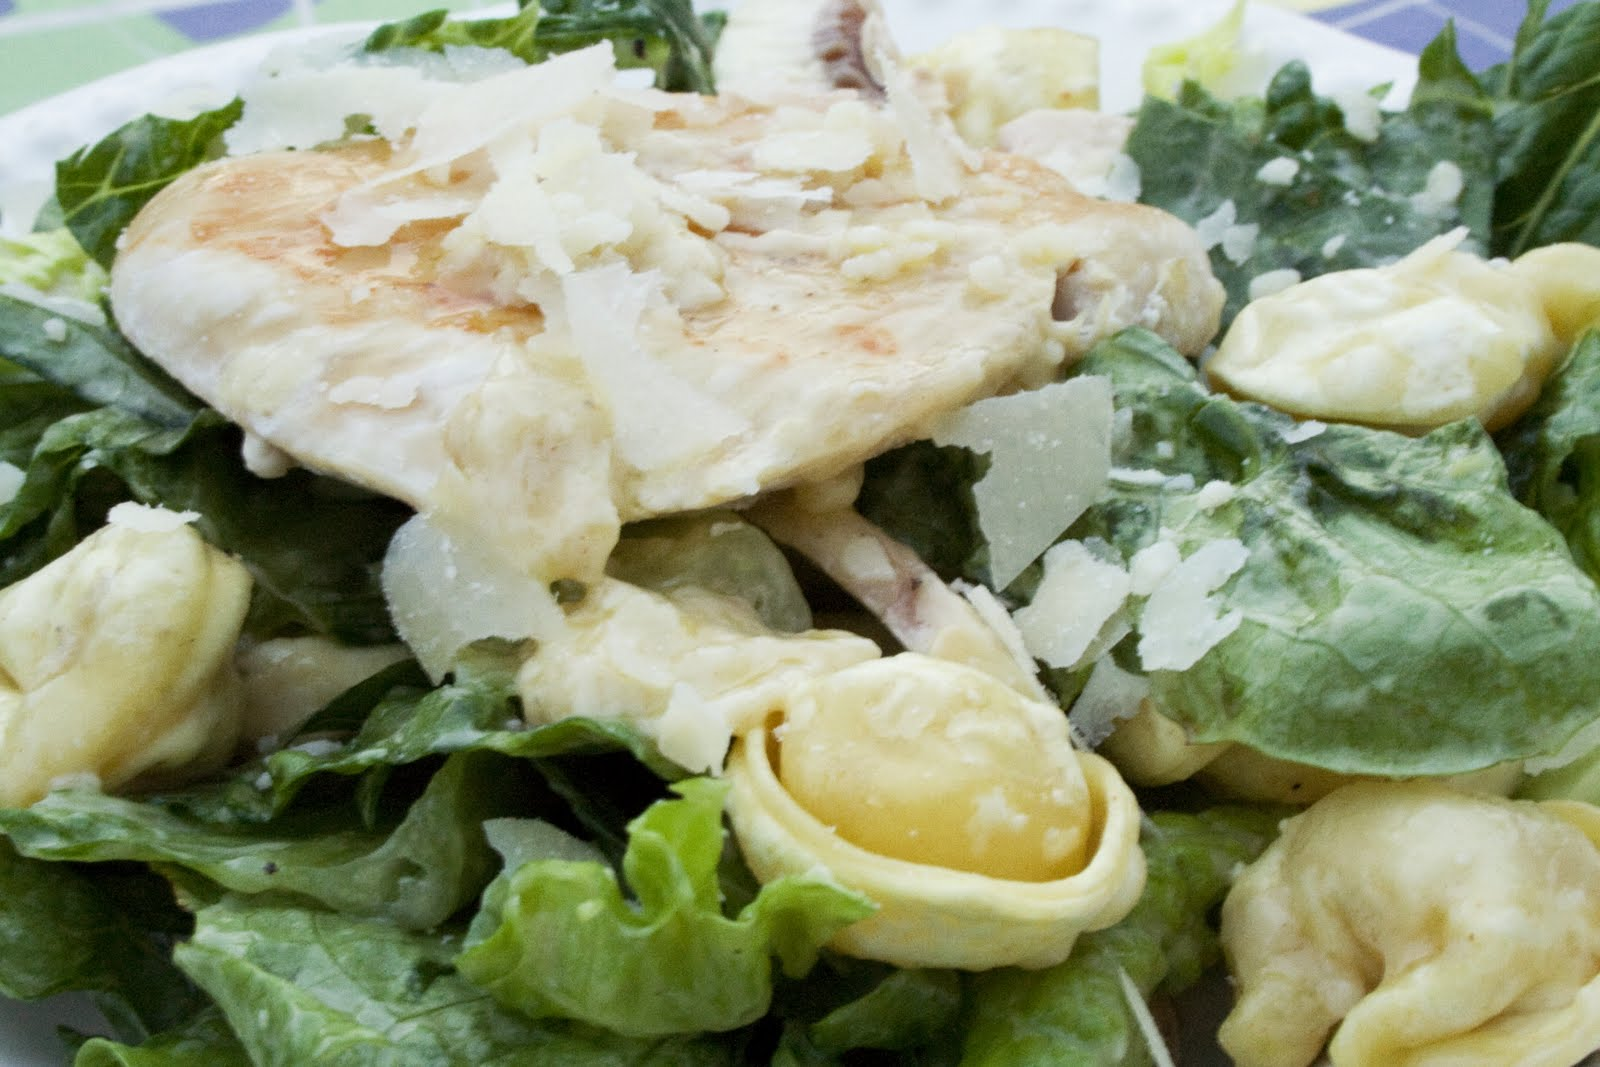 Caesar Salad with Tortellini Croutons